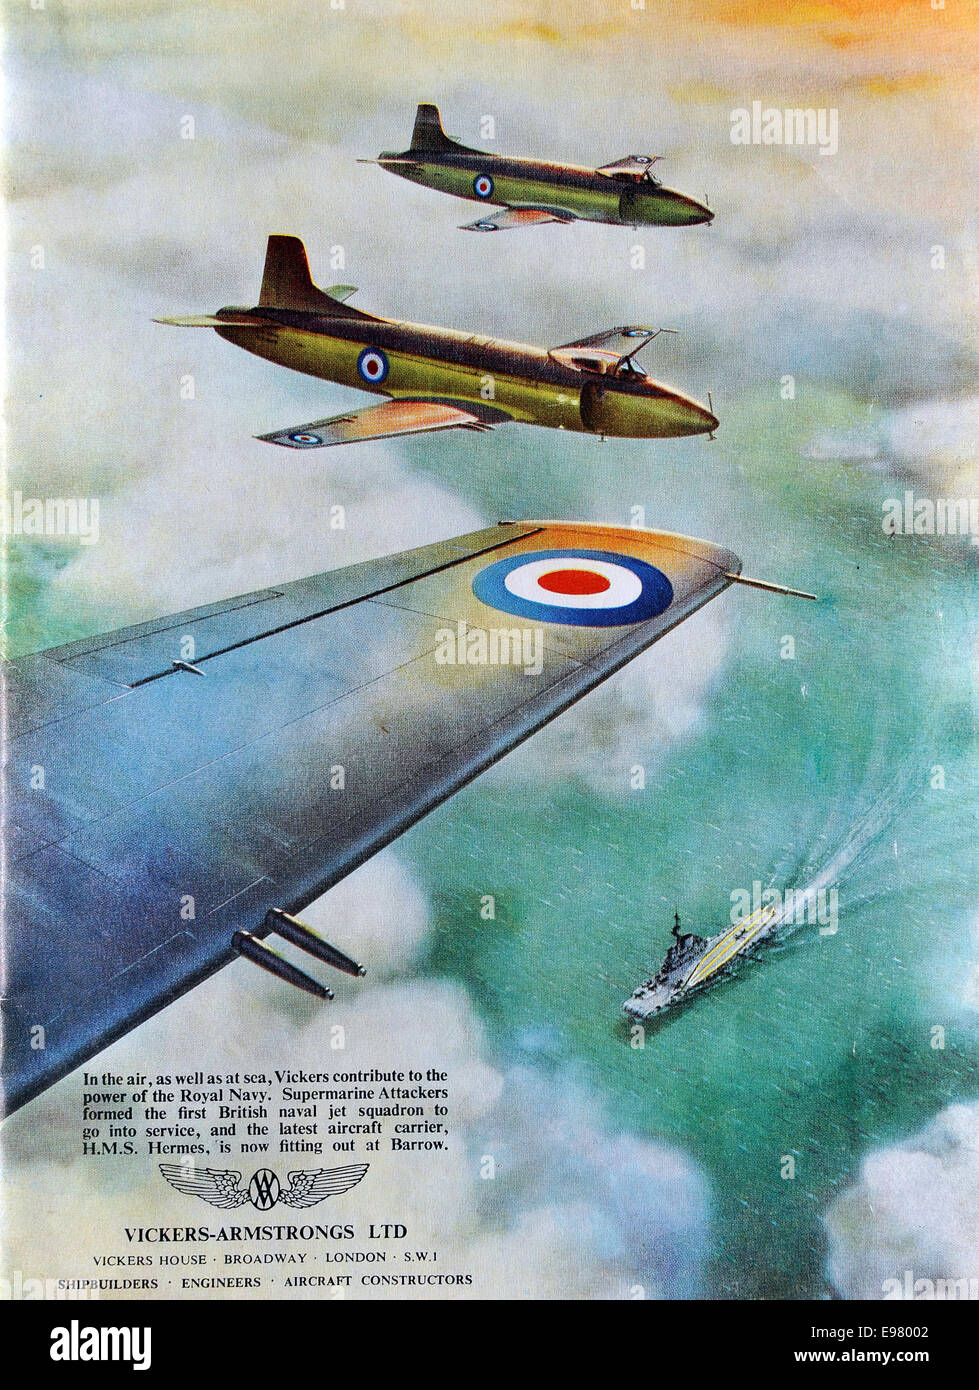 Advert by Vickers-Armstrong in the Coronation Naval Fleet Review programme 1953. Britain. - Stock Image